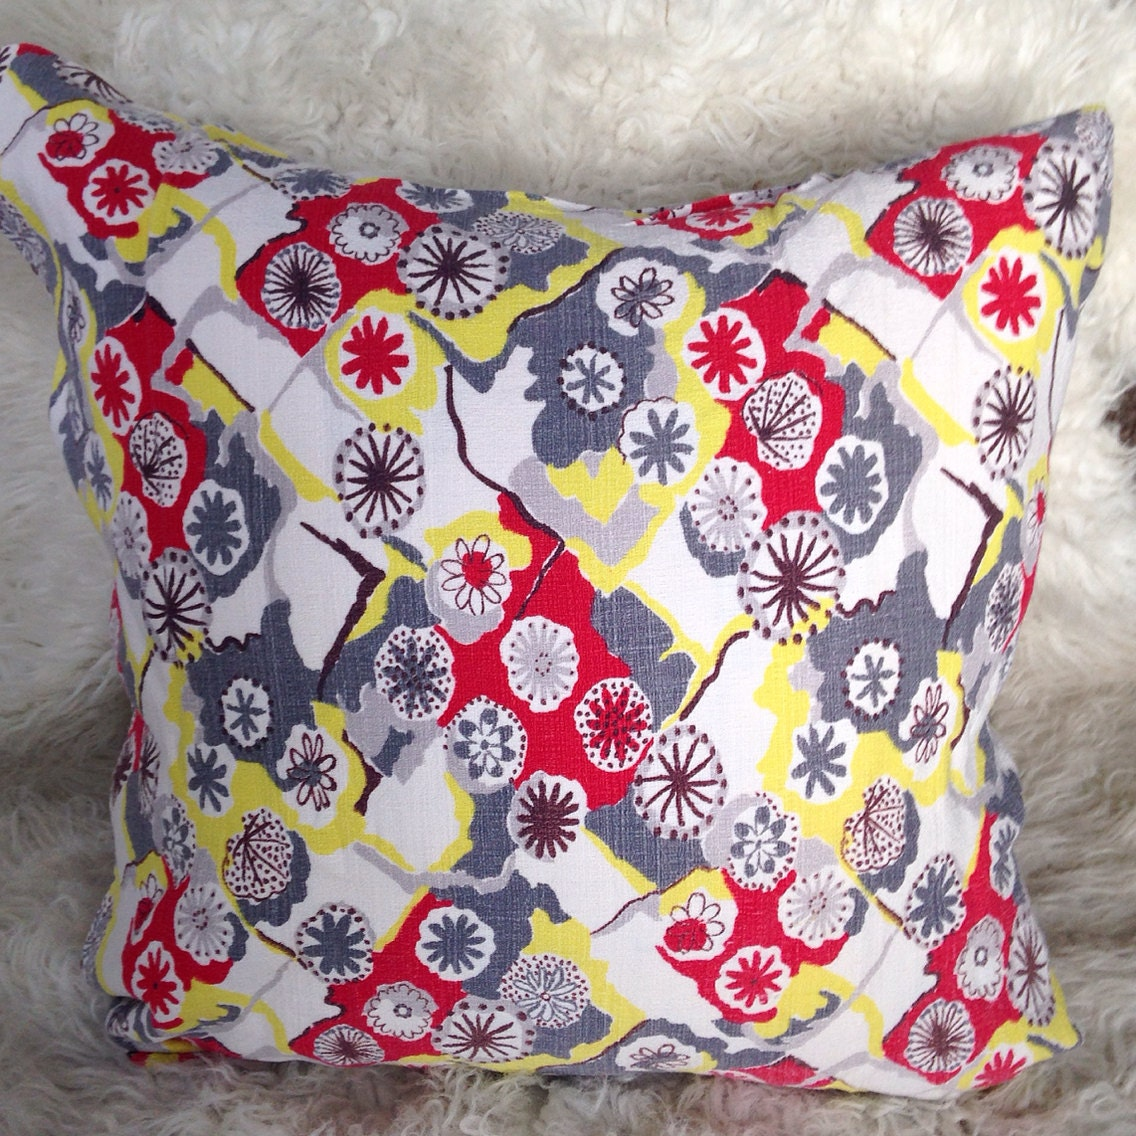 Mid Century Throw Pillow : Mid century modern atomic throw pillow cover